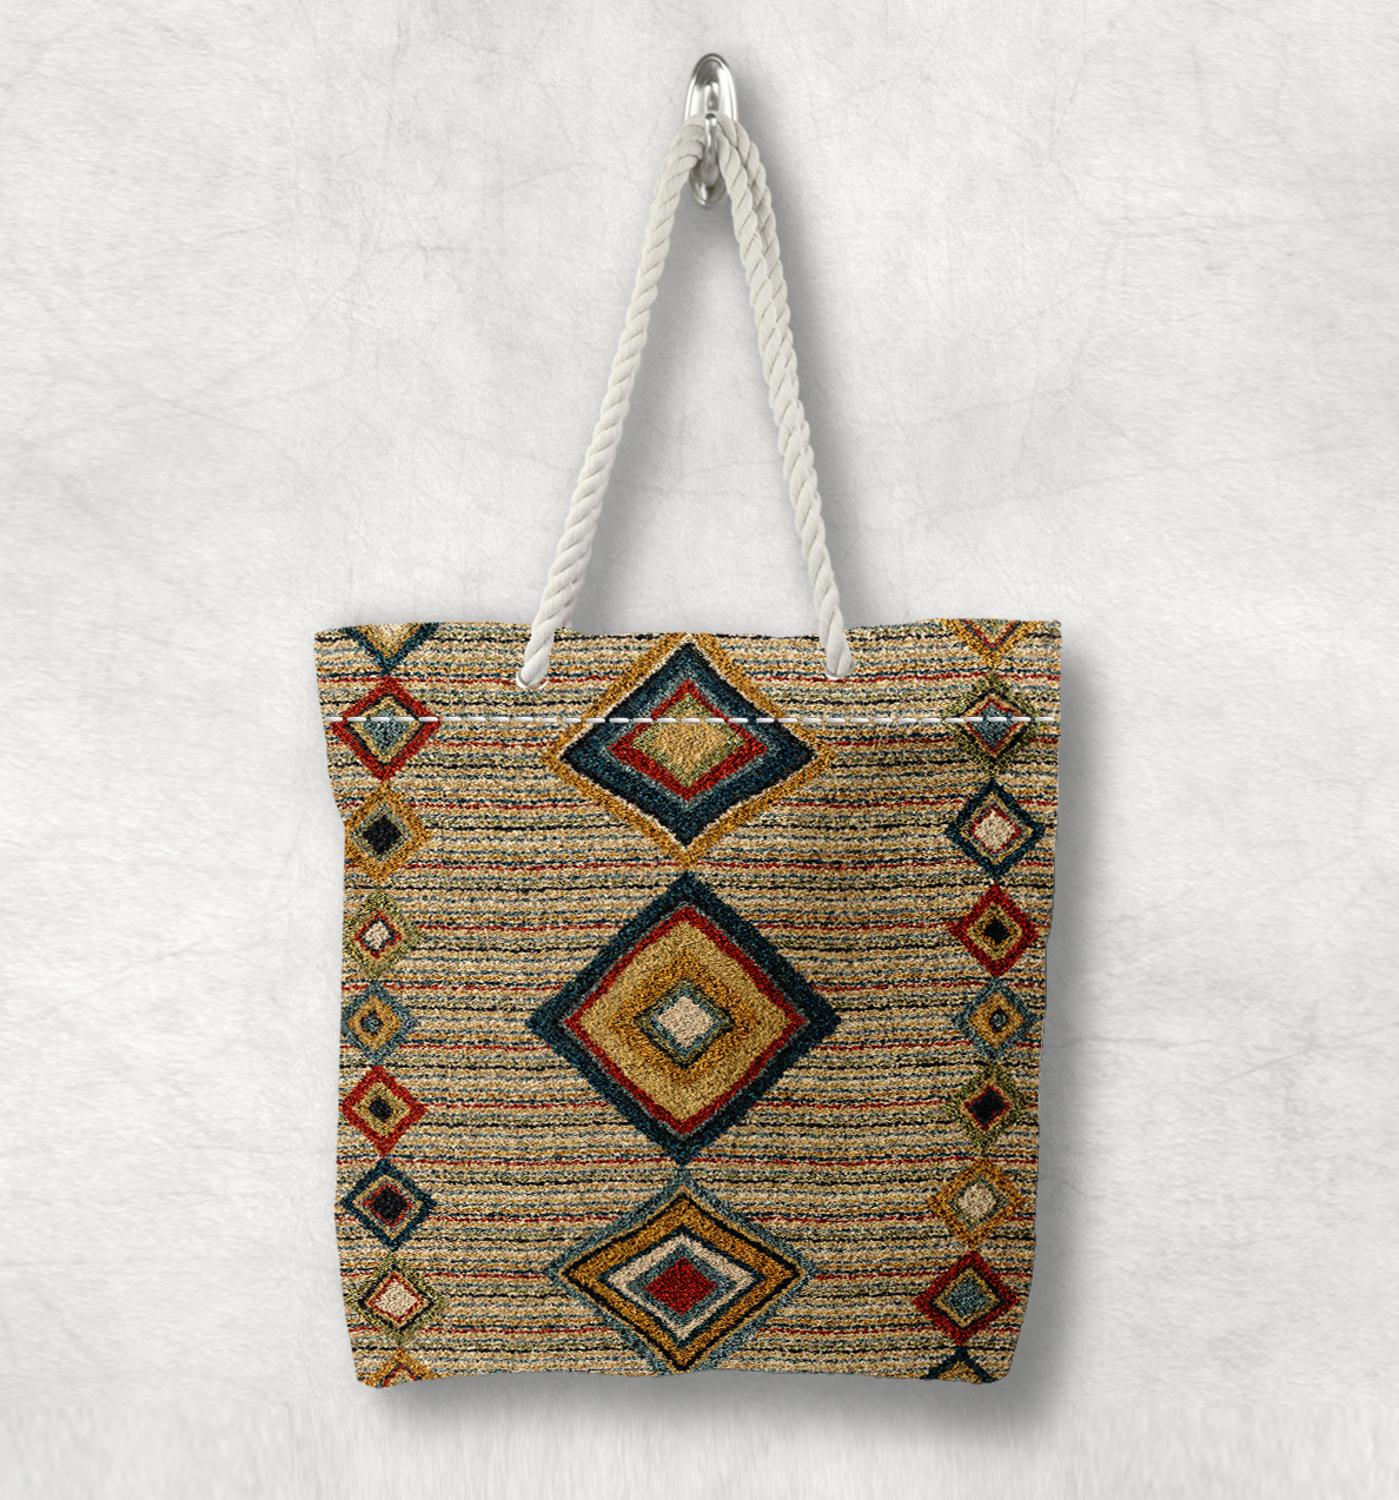 Else Brown Tiles Antique Anatolia Turkish Kilim Design White Rope Handle Canvas Bag Cotton Canvas Zippered Tote Bag Shoulder Bag